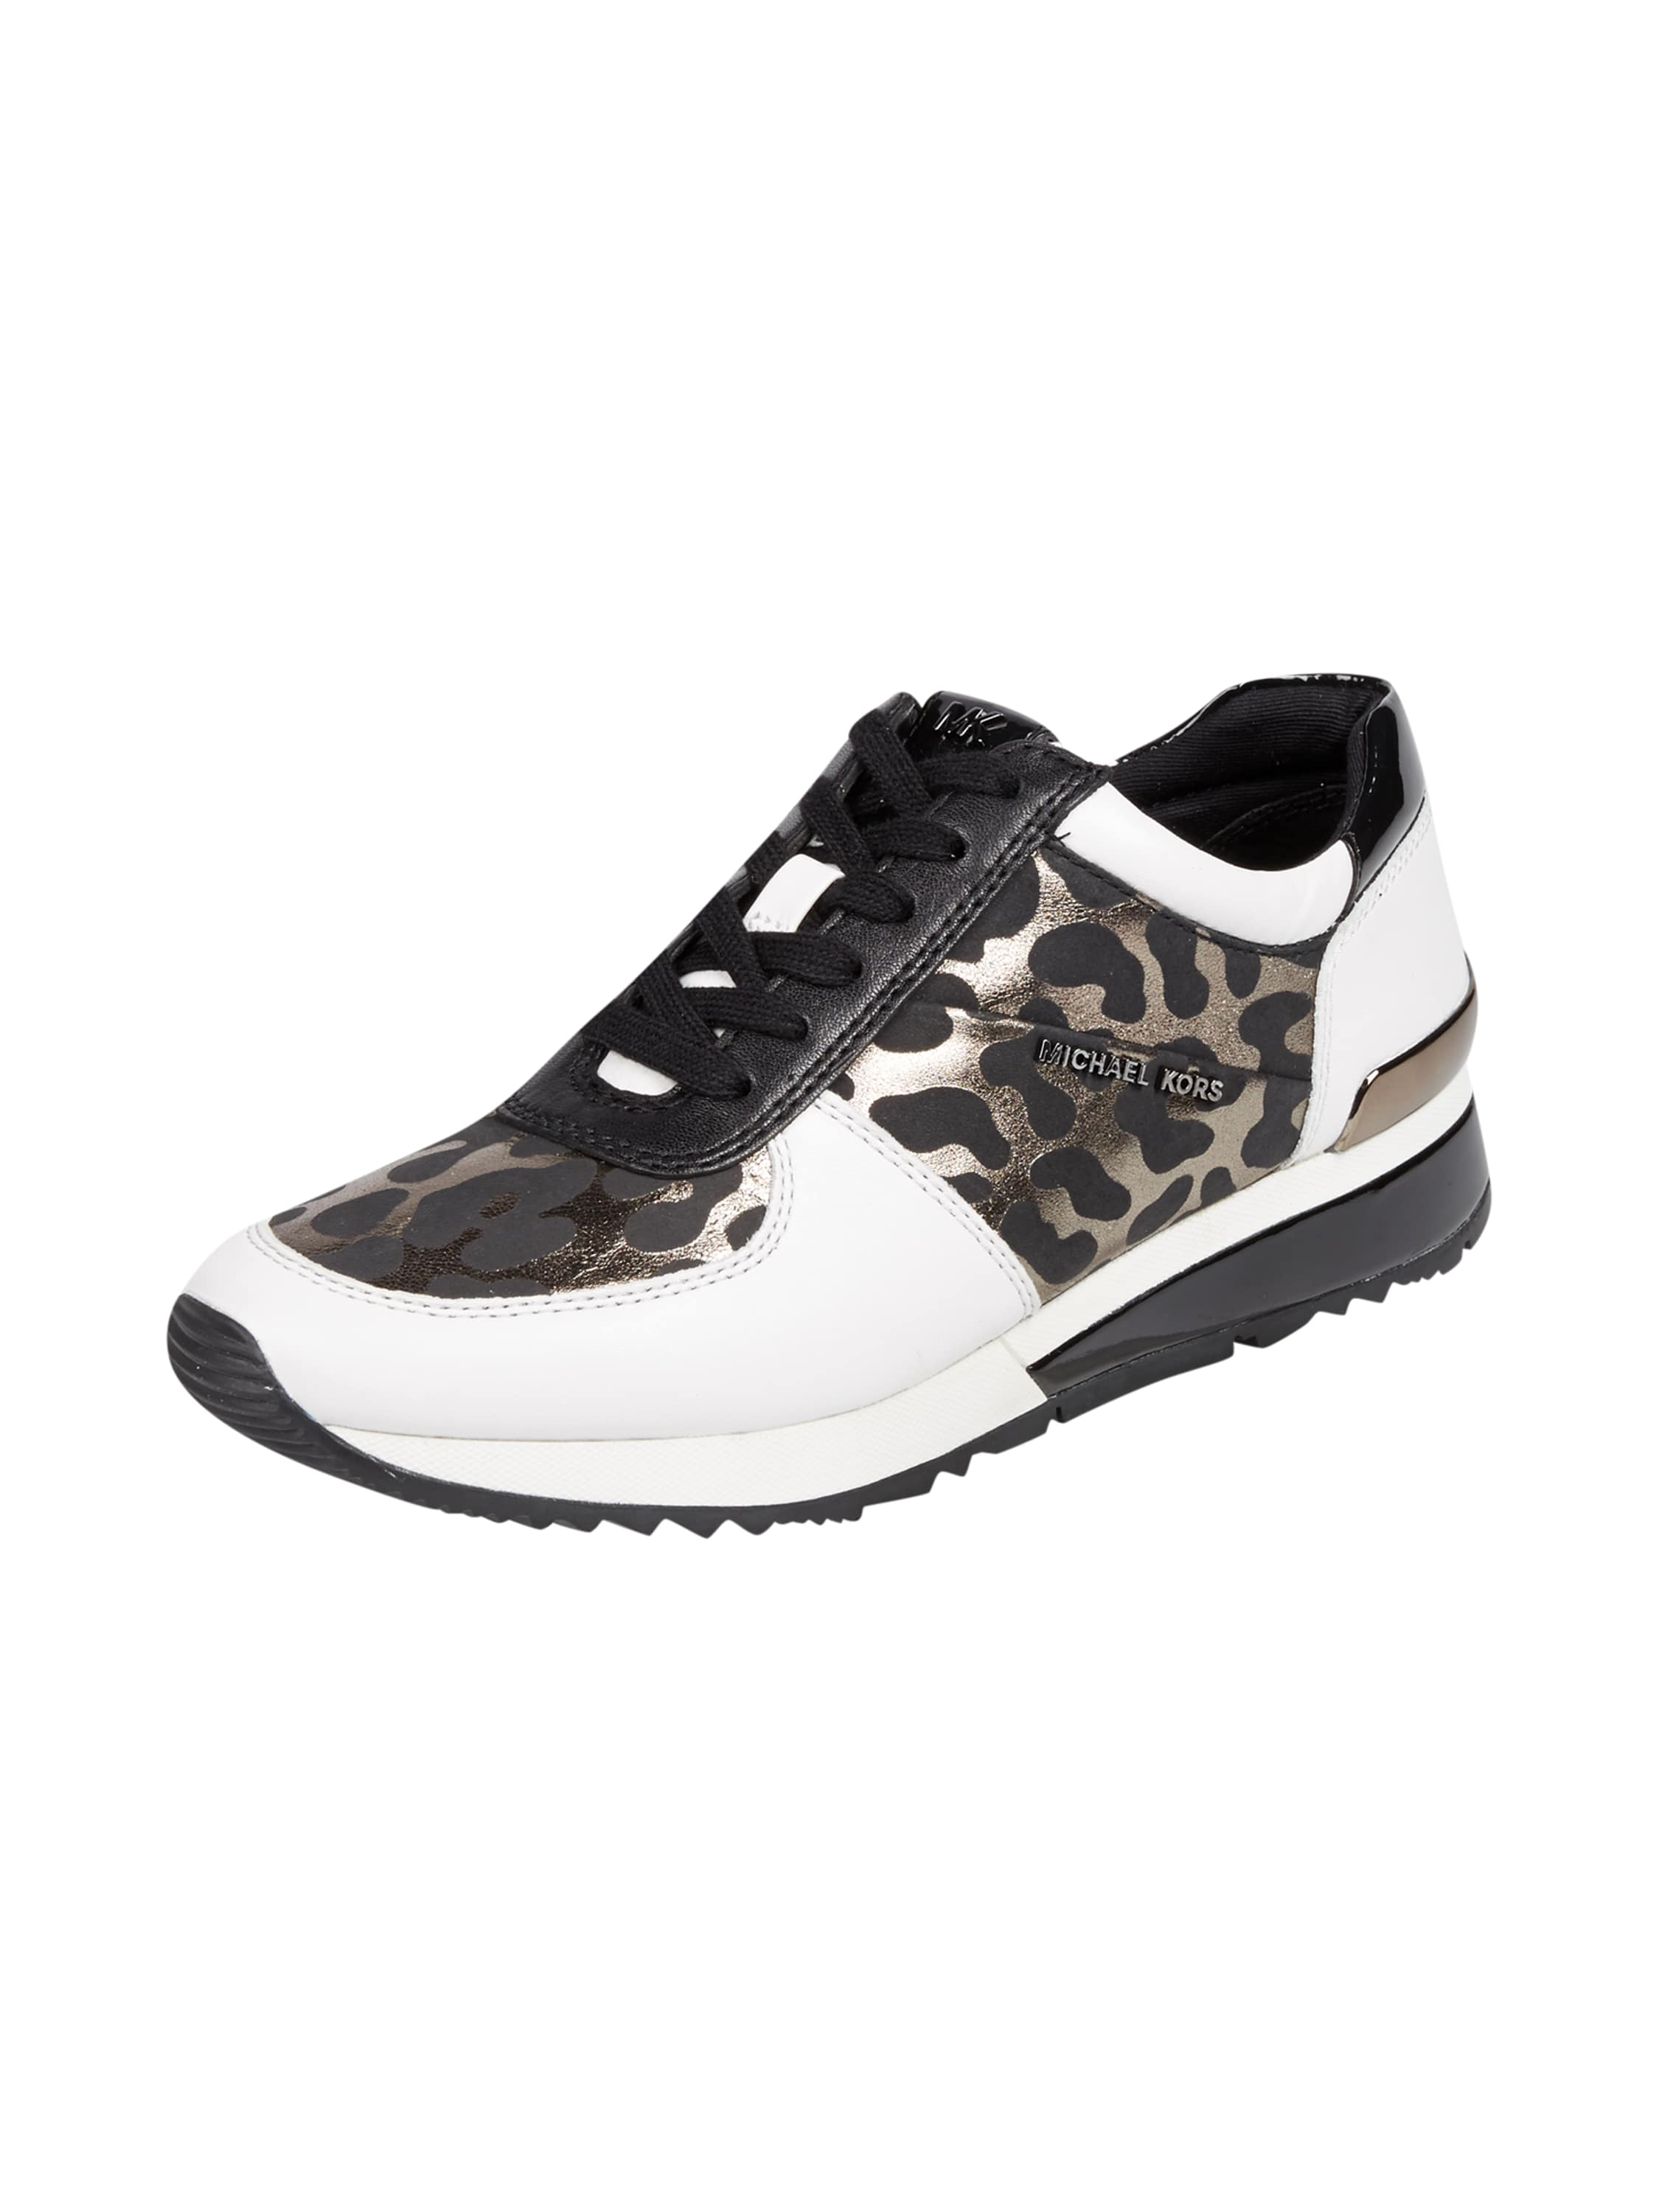 michael michael kors sneaker aus leder mit leopardenmuster in wei online kaufen 9514644 p c. Black Bedroom Furniture Sets. Home Design Ideas